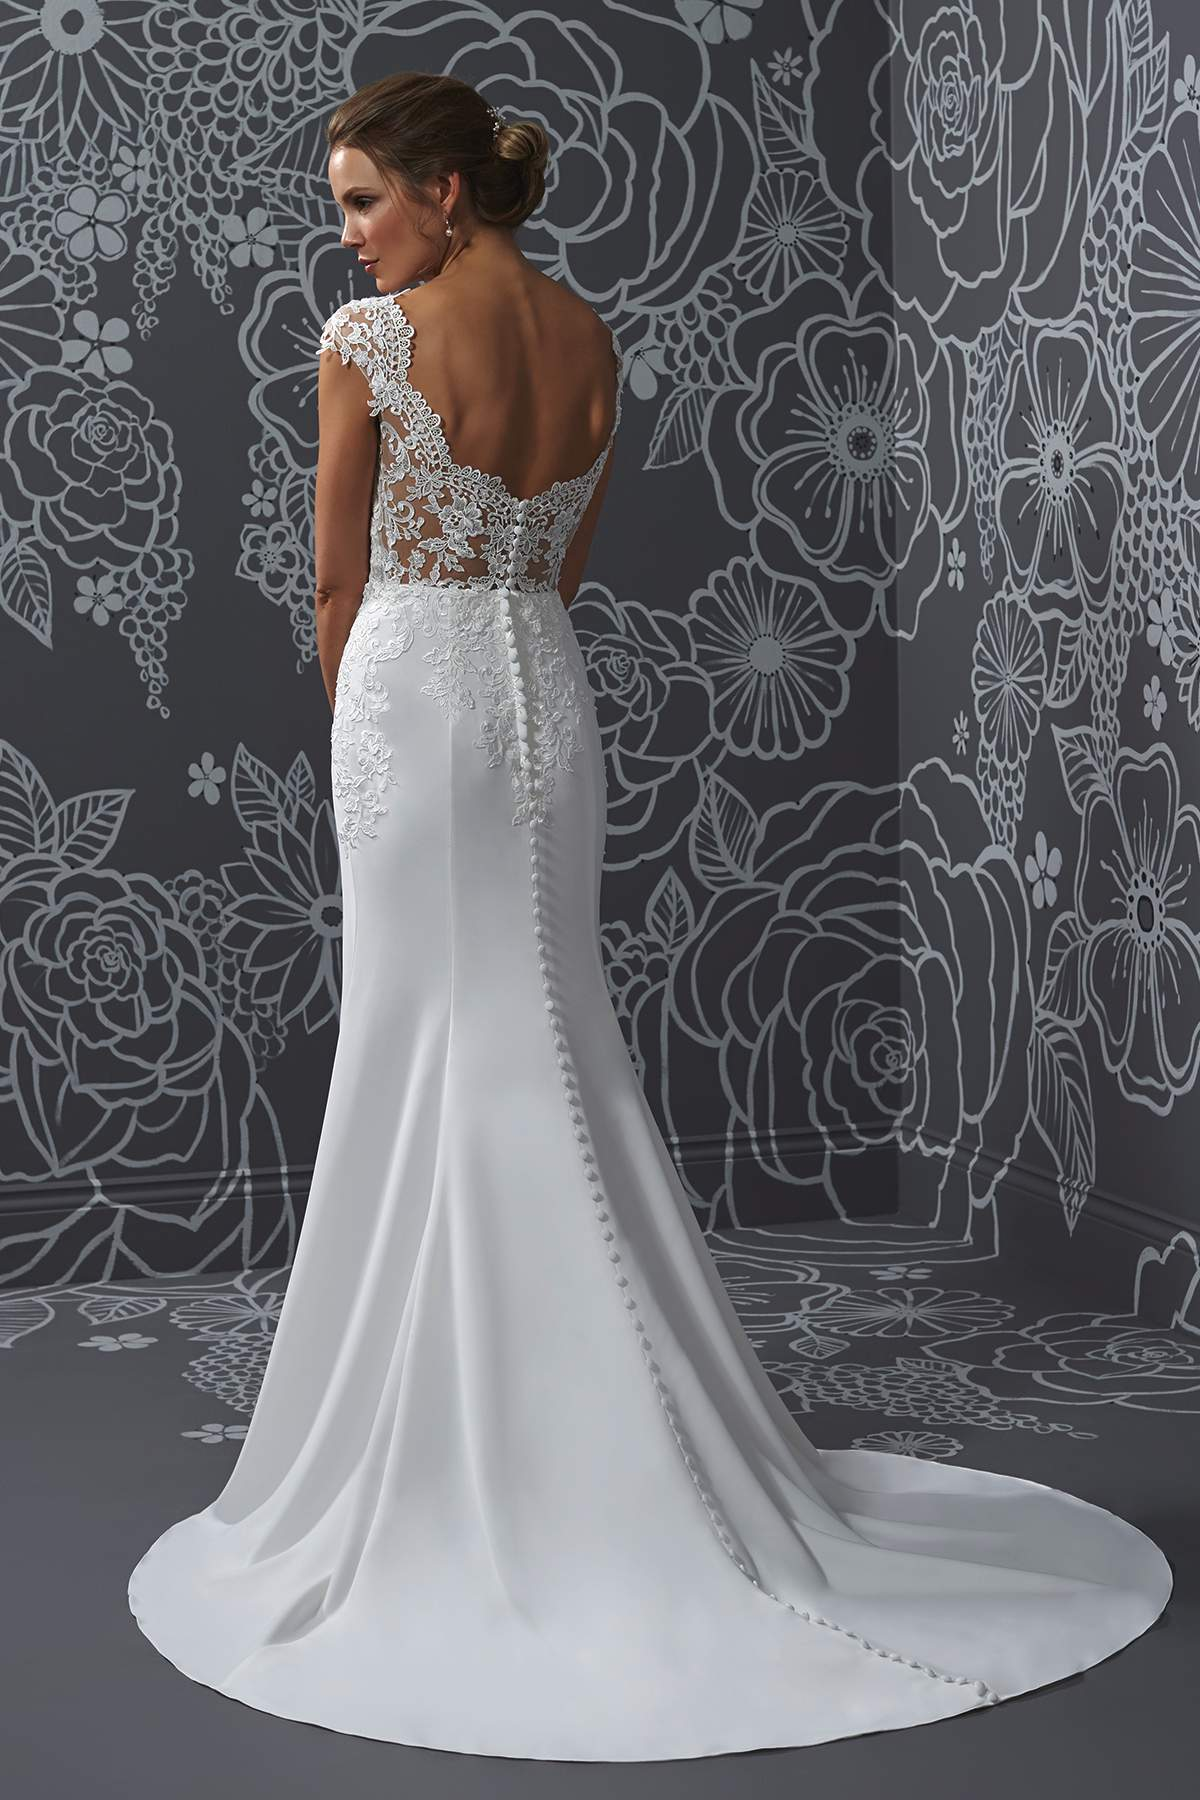 Katrina By Romantica Of Devon Find Your Dream Dress